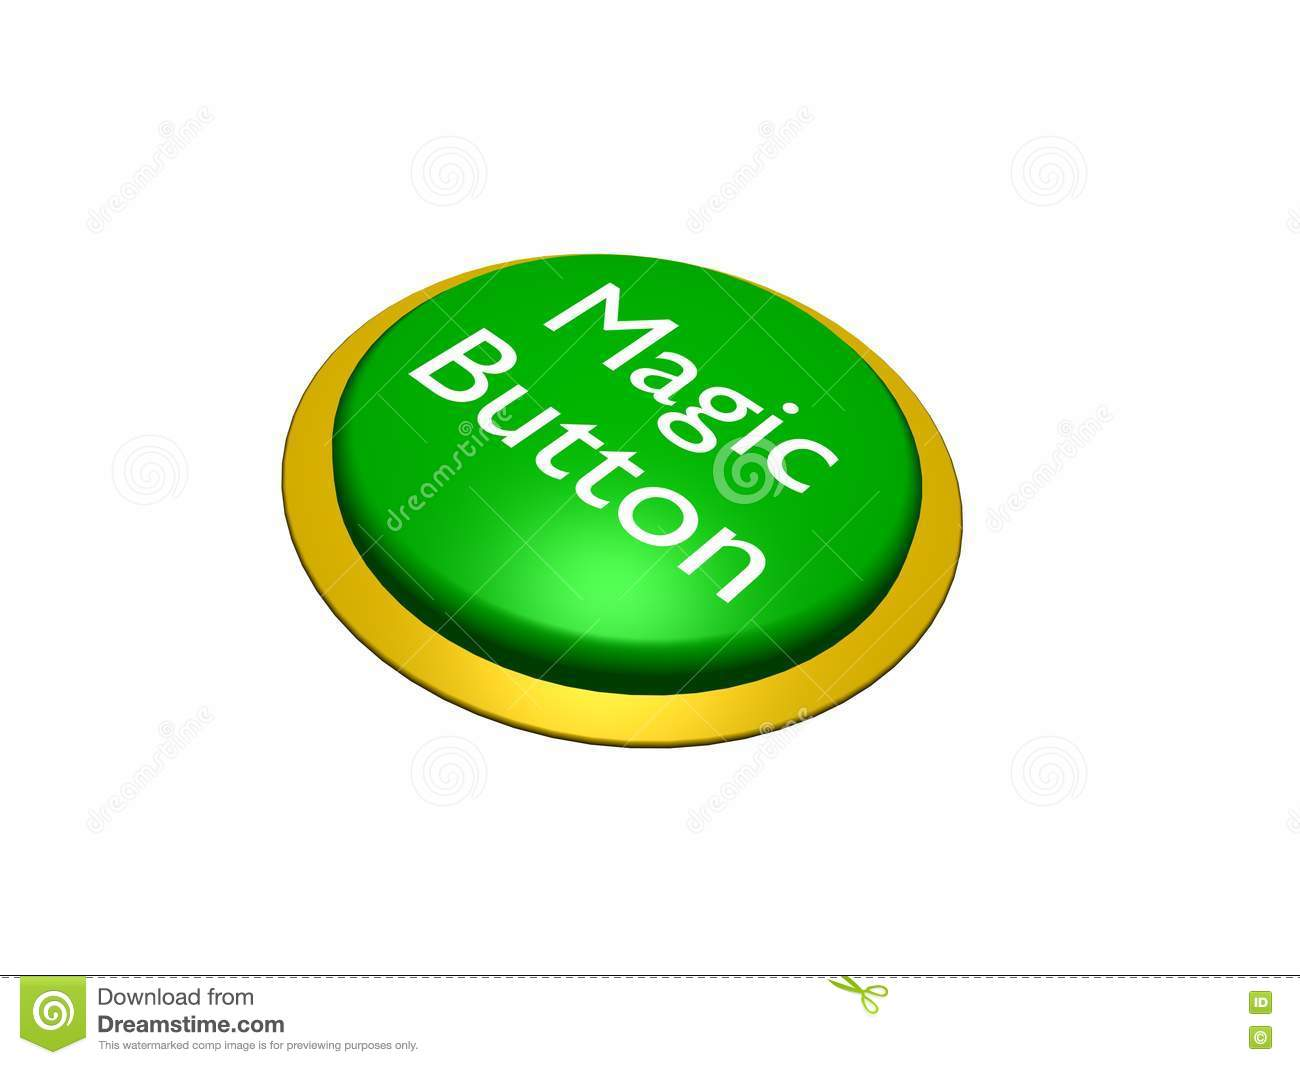 Magic Button Stock Photography - Image: 14101202: dreamstime.com/stock-photography-magic-button-image14101202